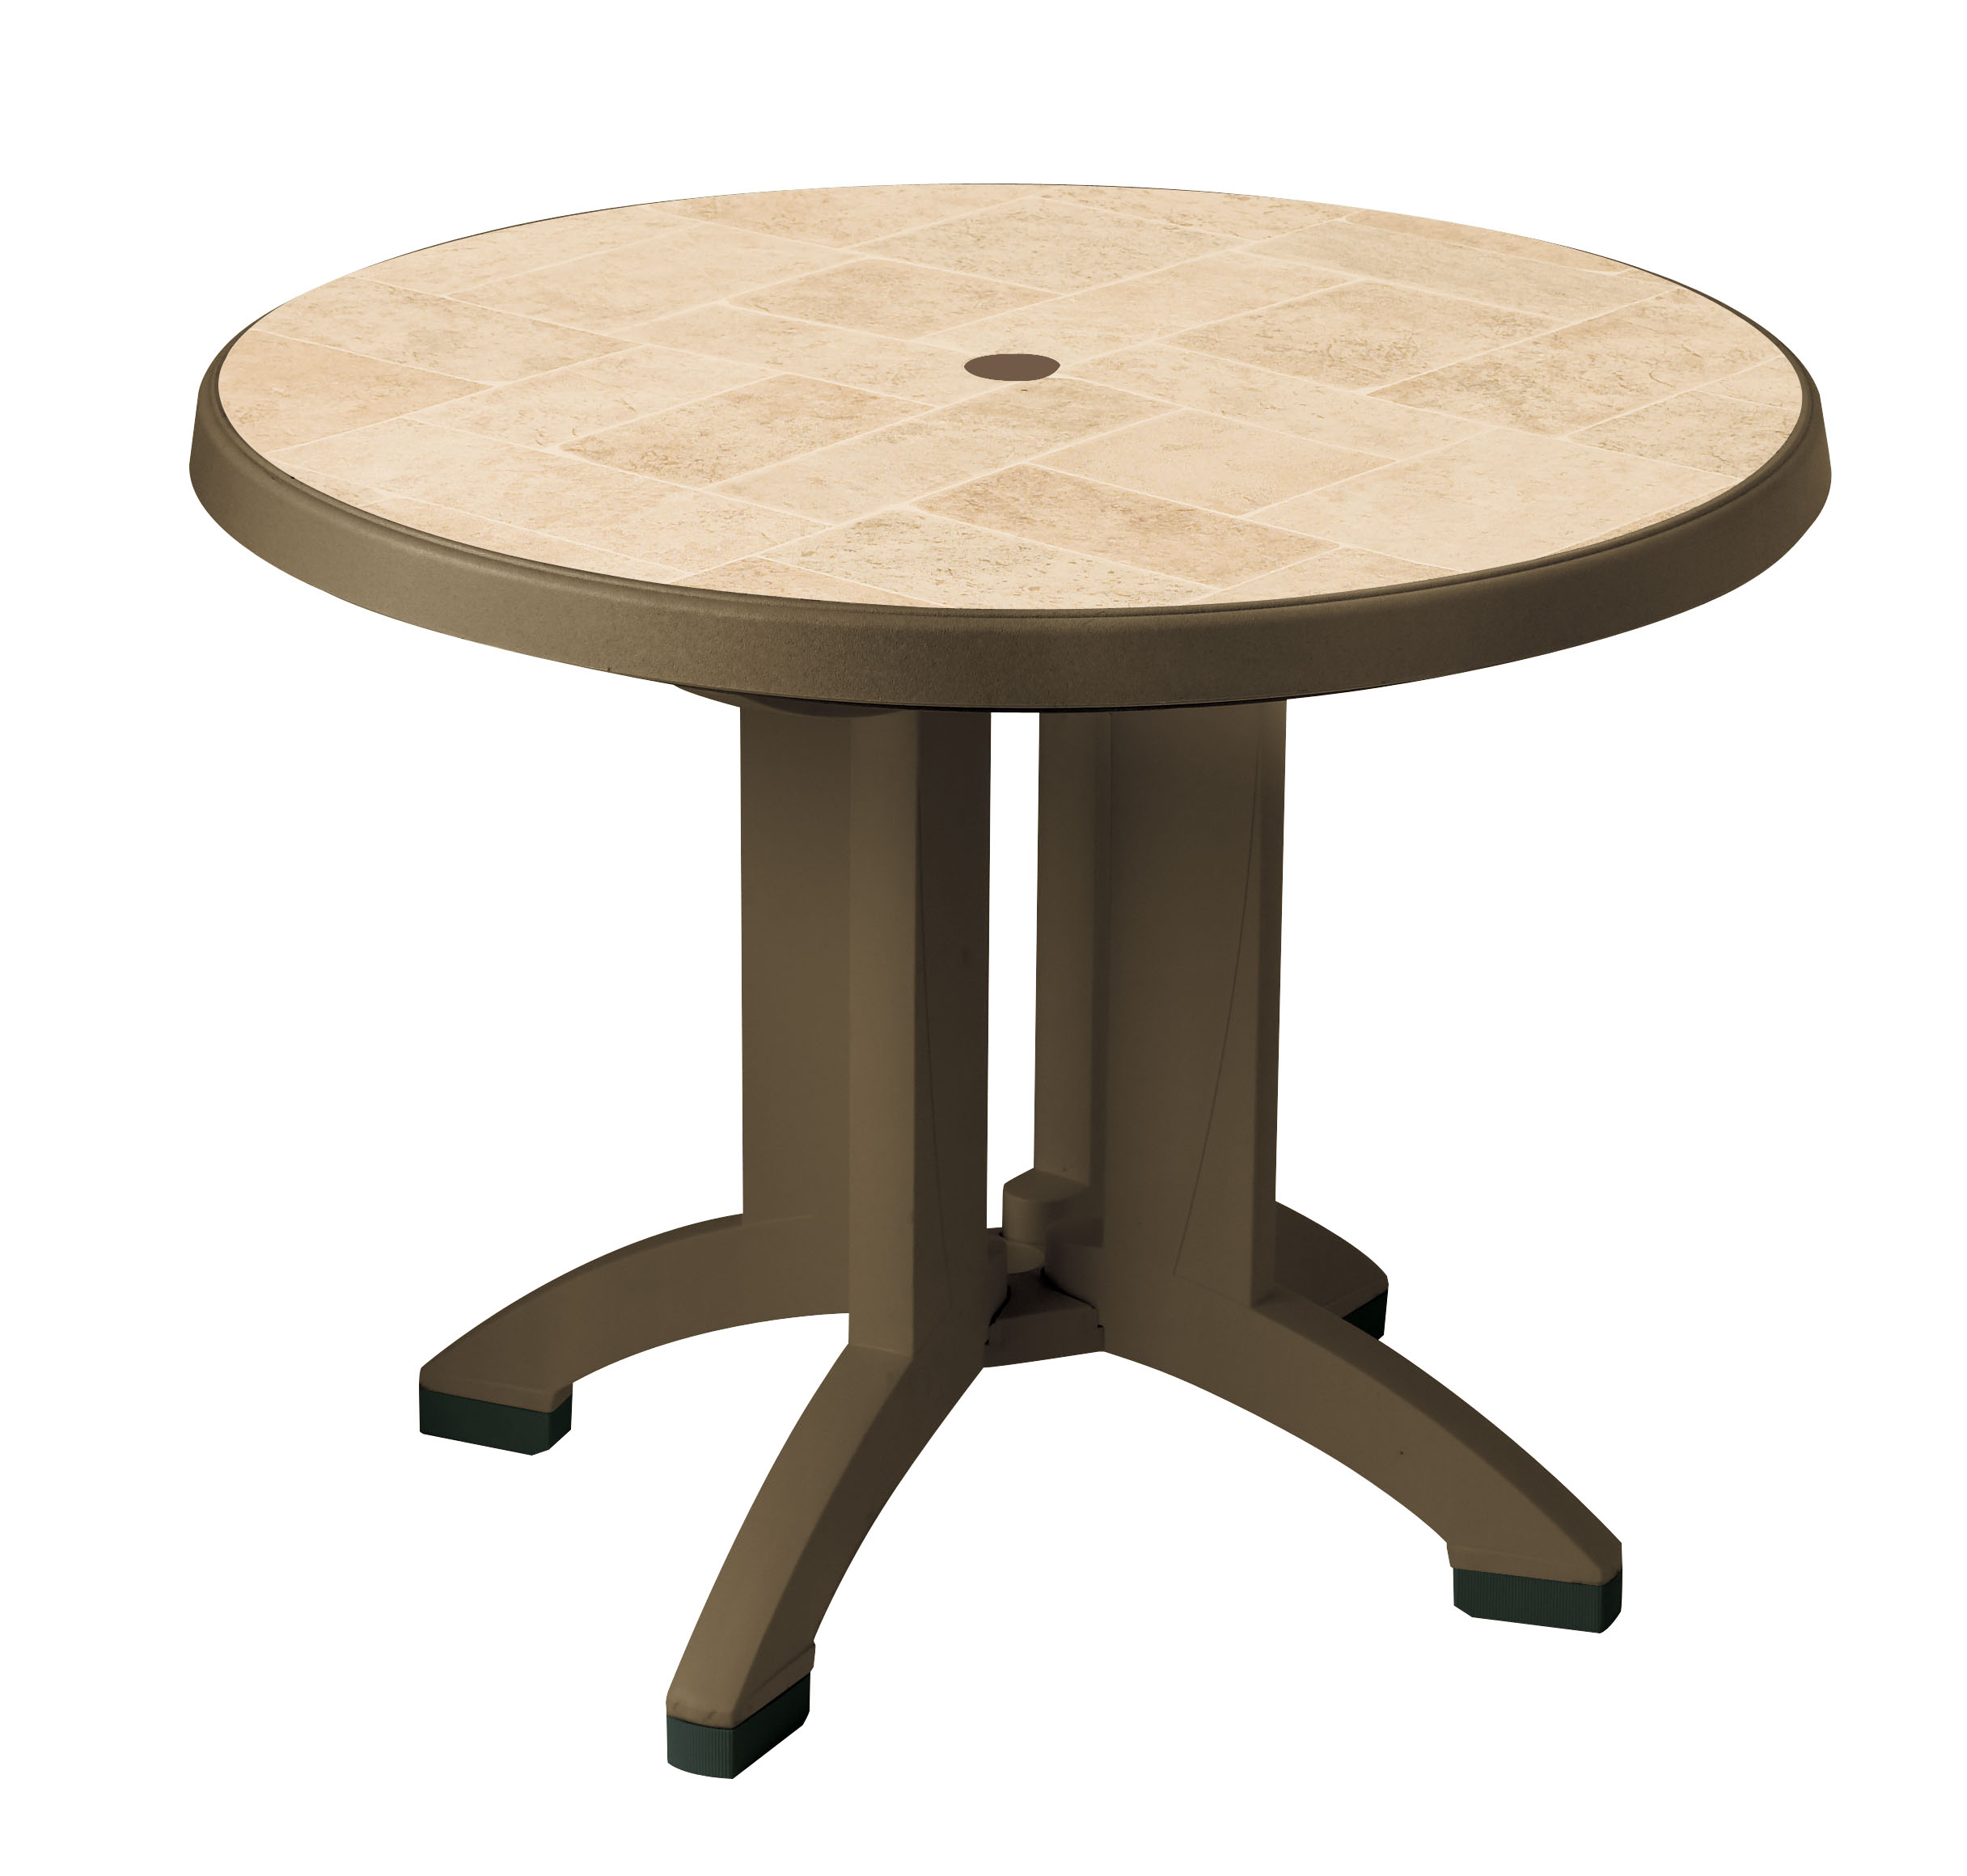 Siena 38 in Round Resin Folding Patio Dining Table